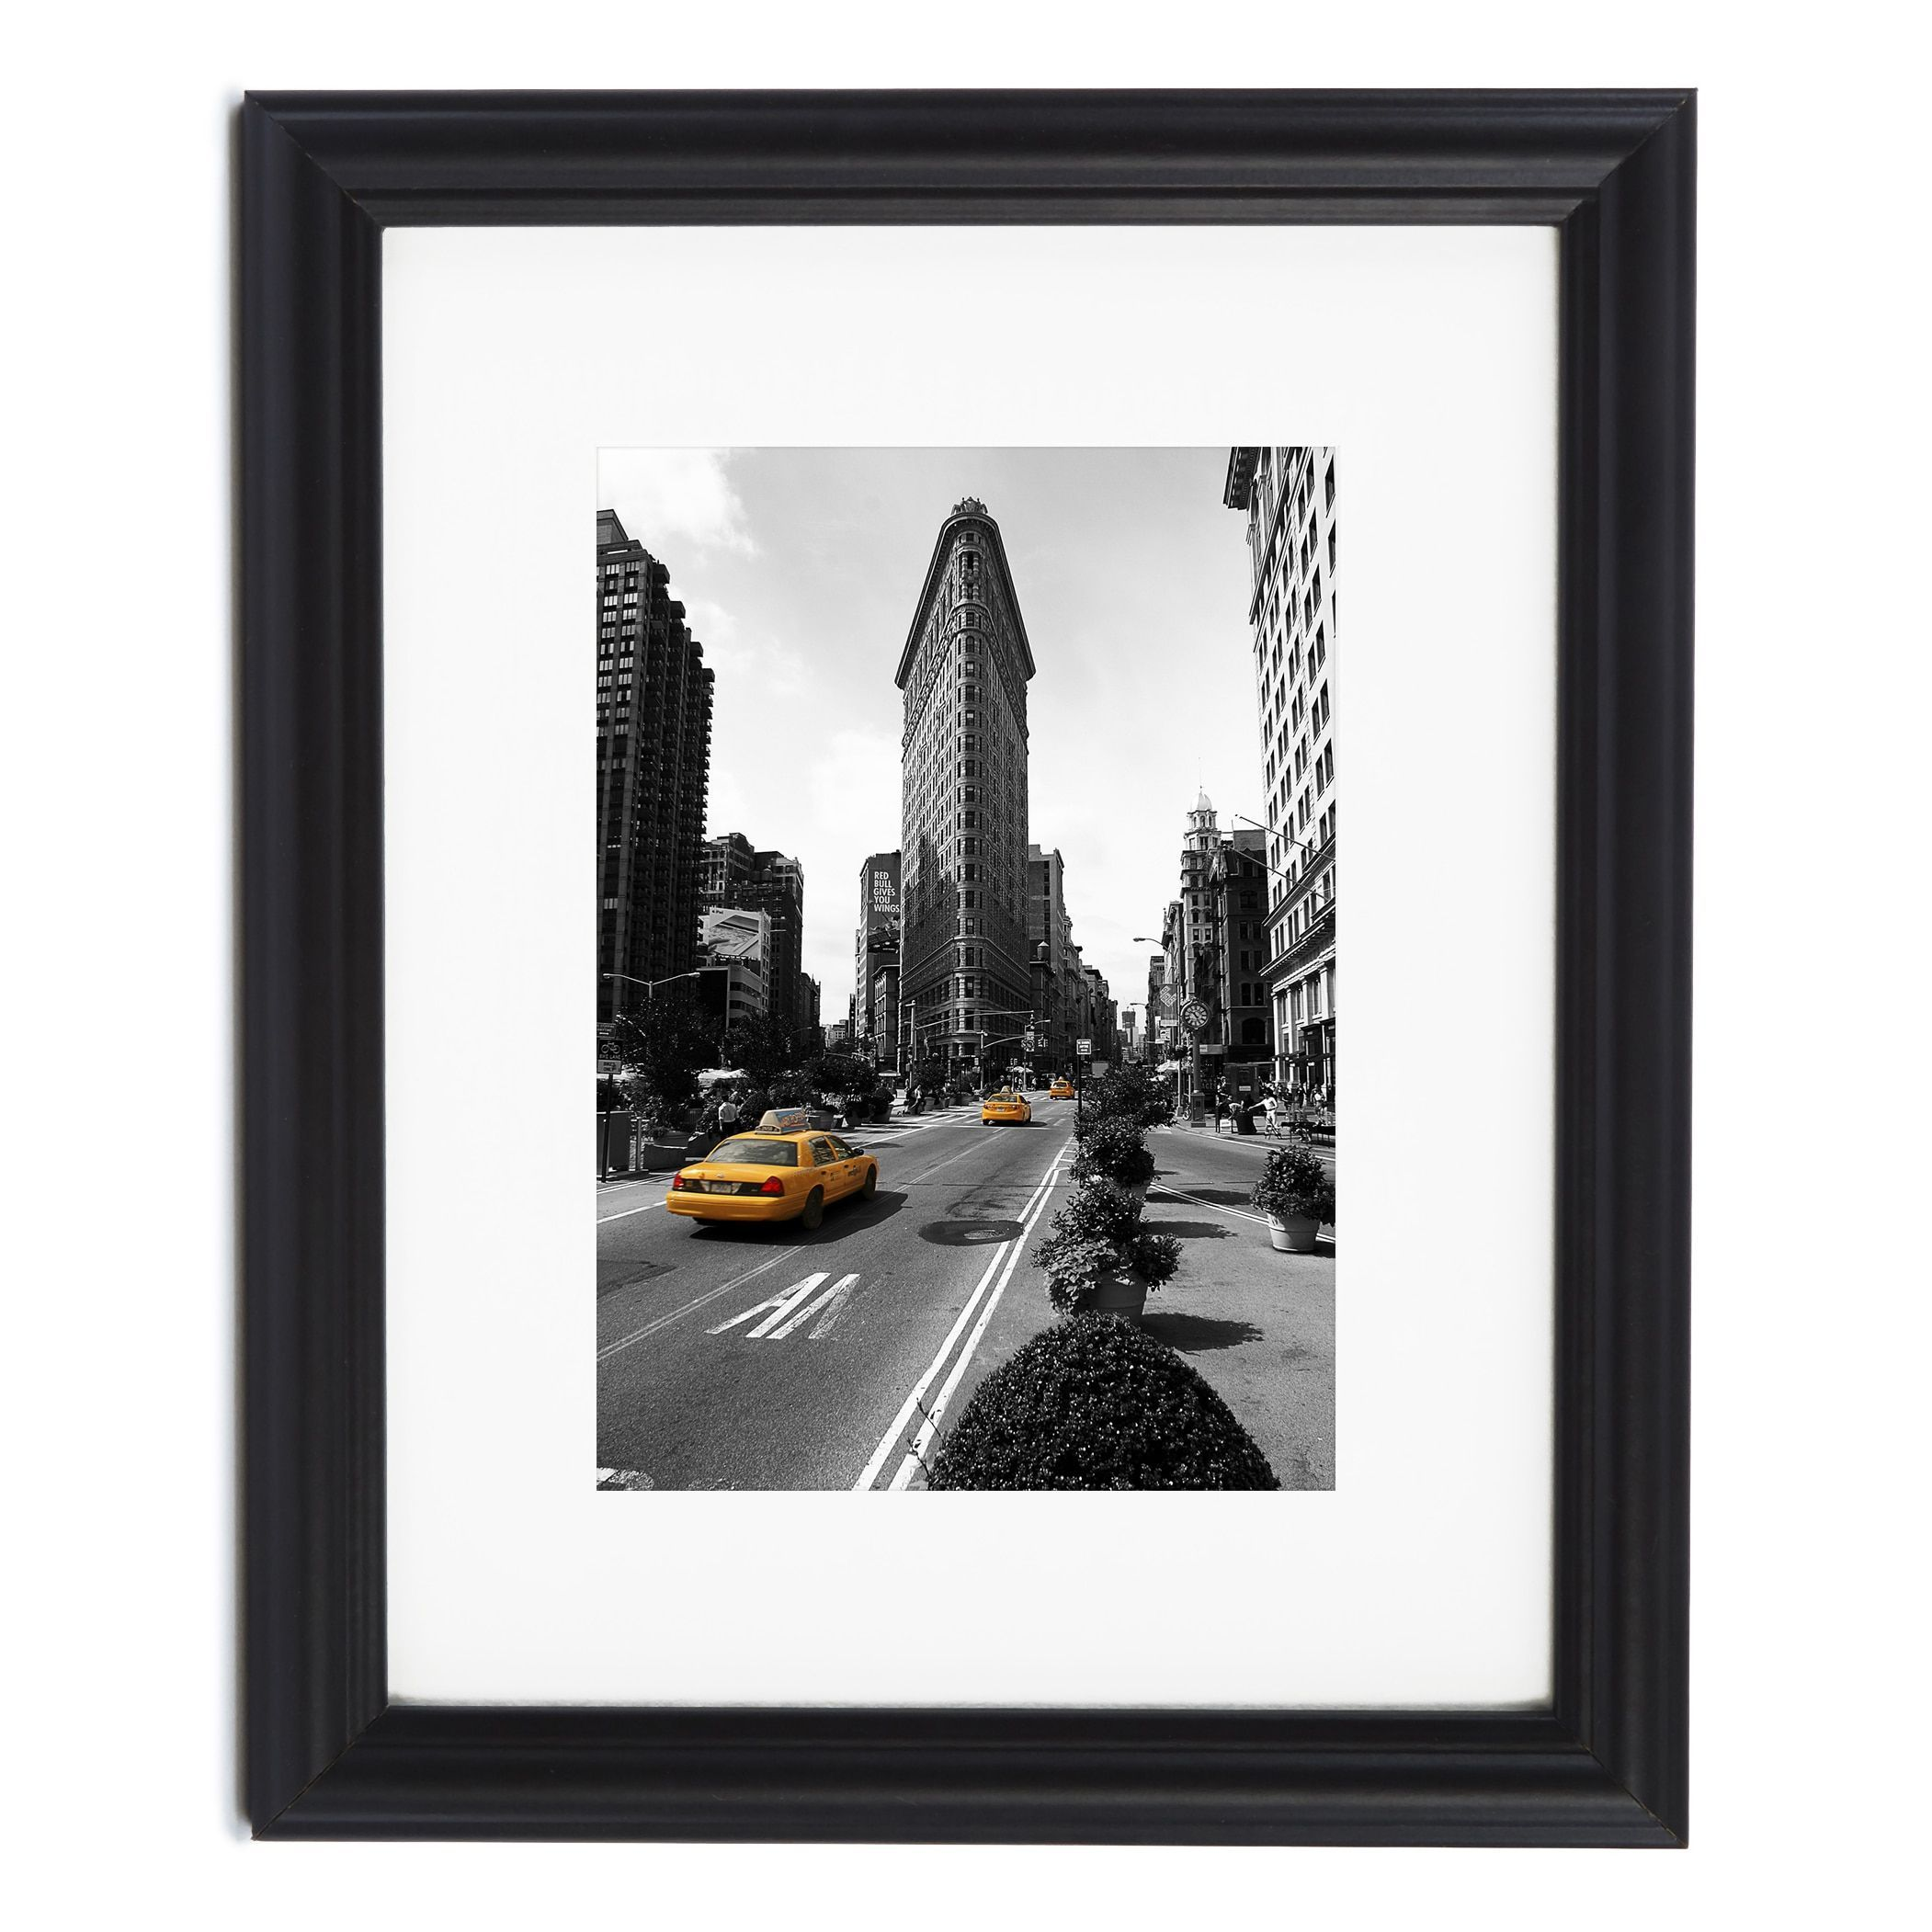 Americanflat Decorative Black Picture Frame with Optional White Mat ...